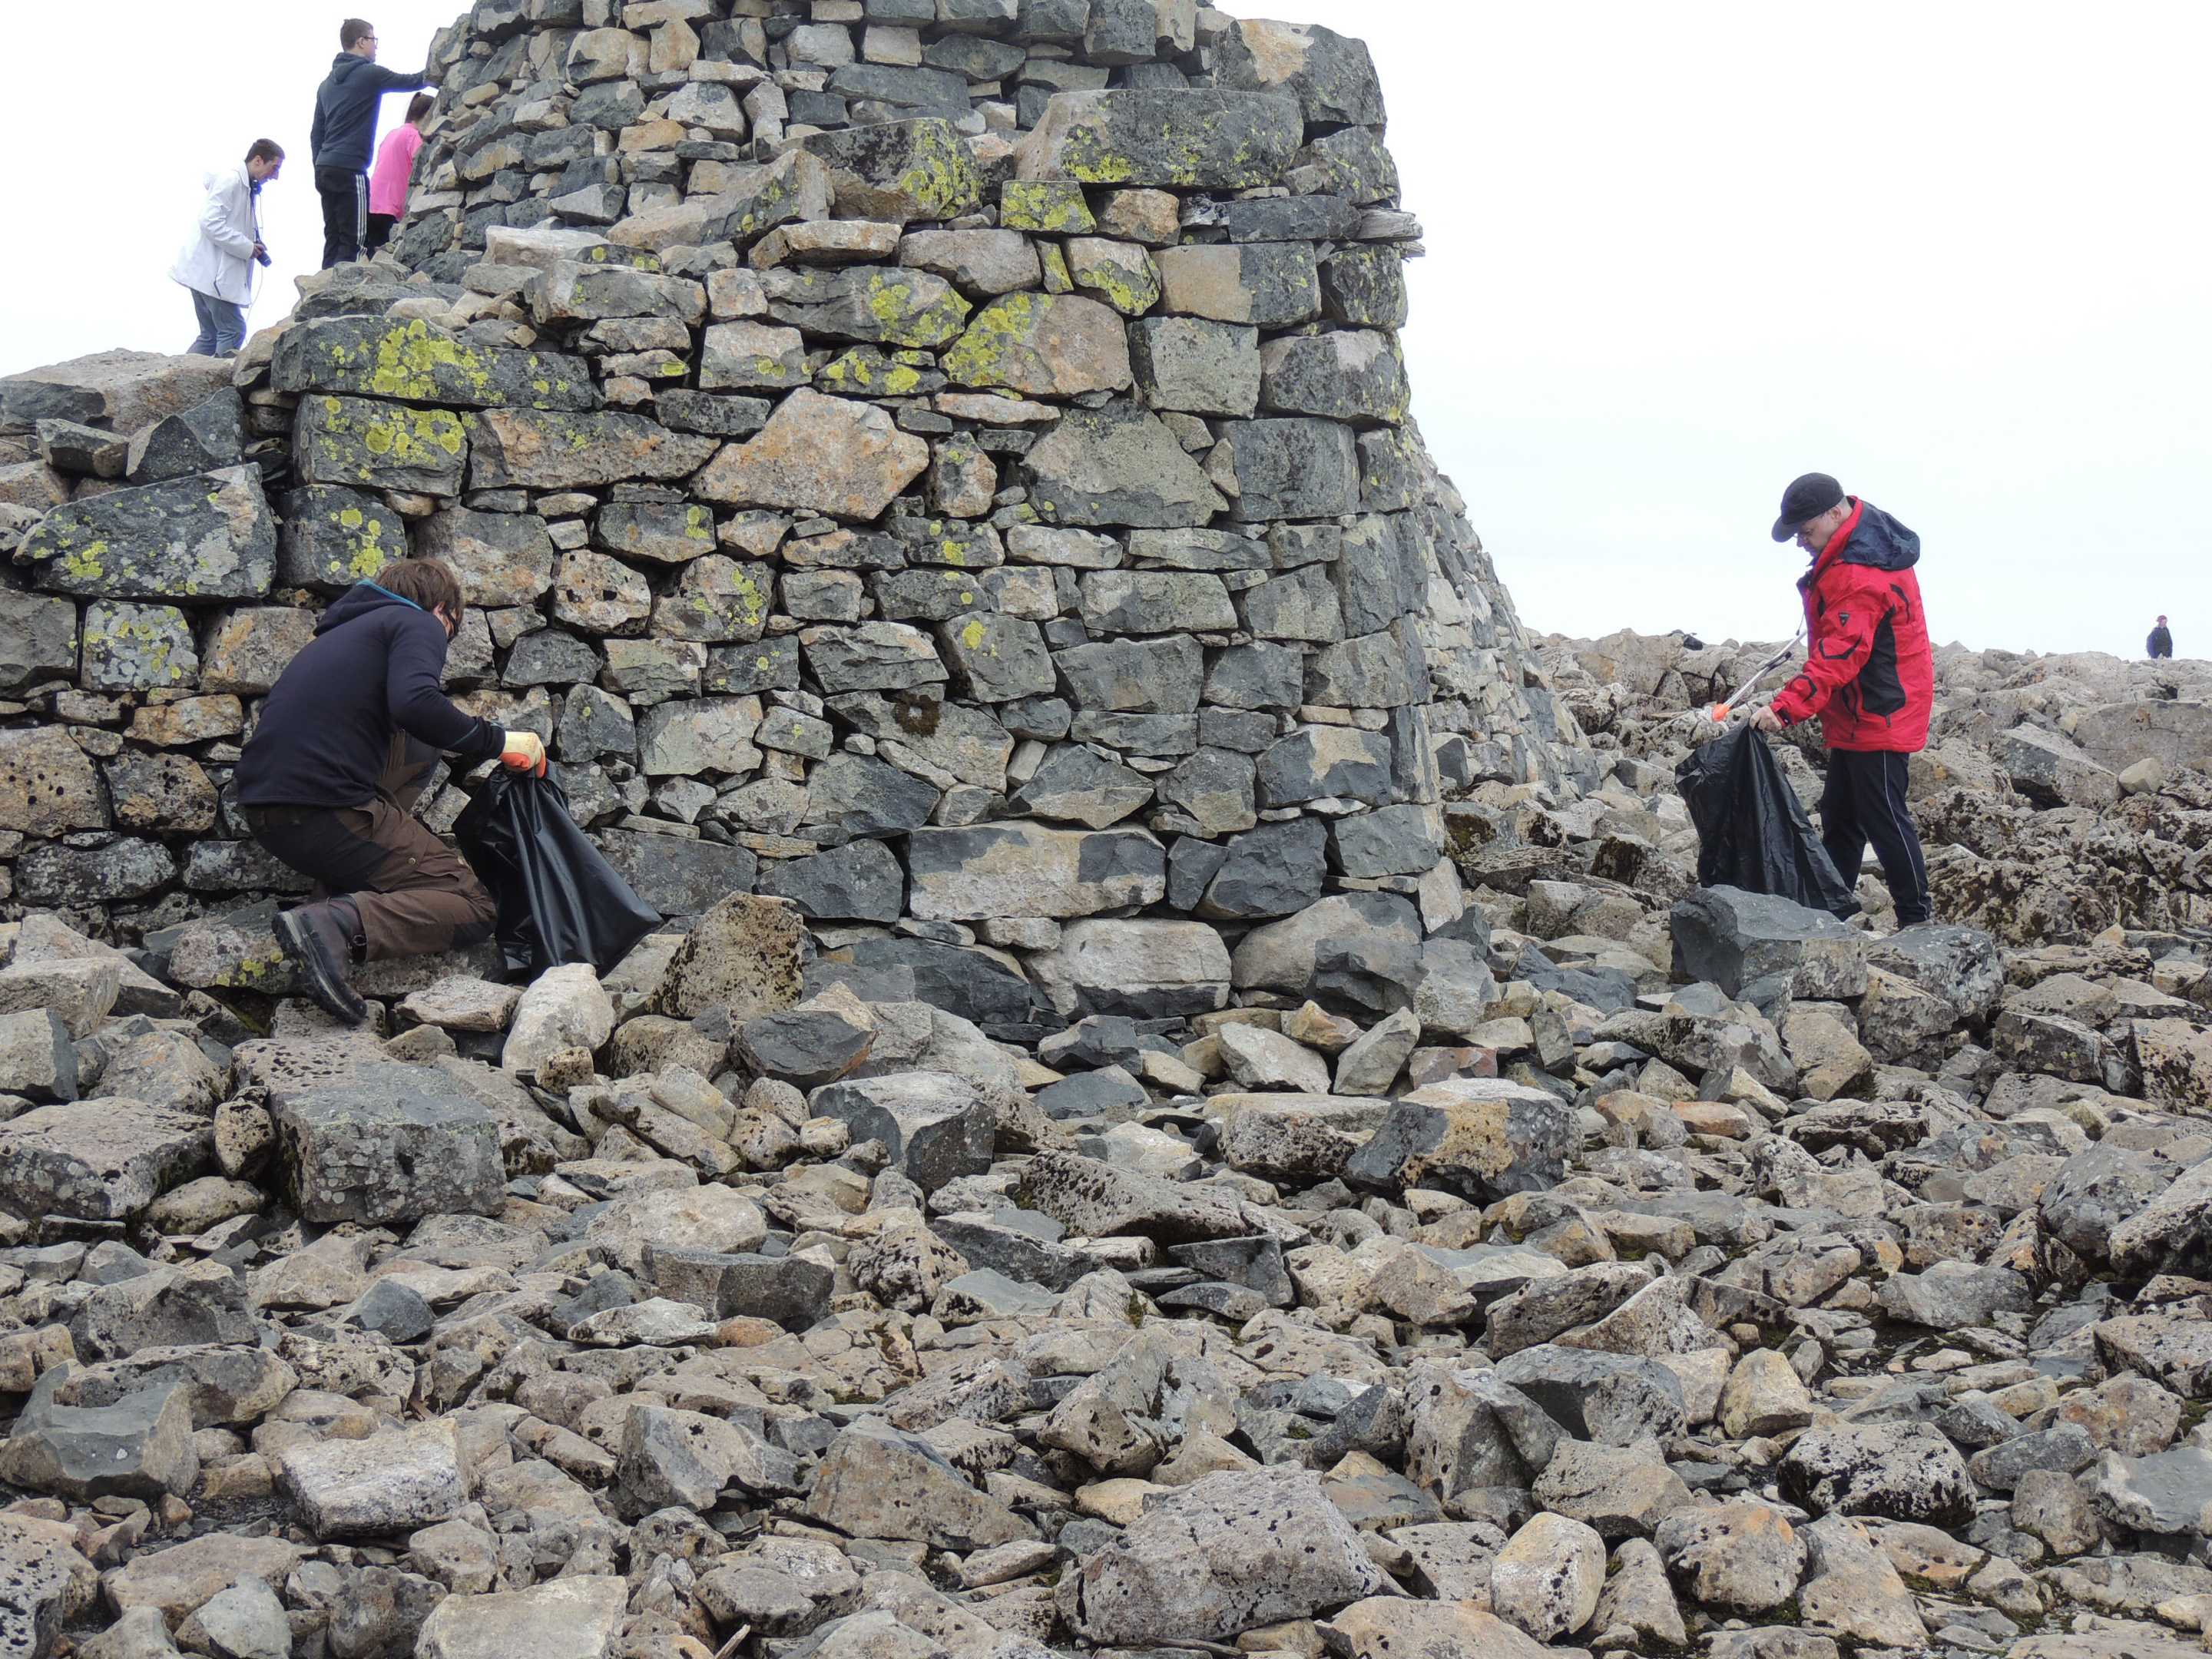 Volunteers collect litter on the summit of Ben Nevis